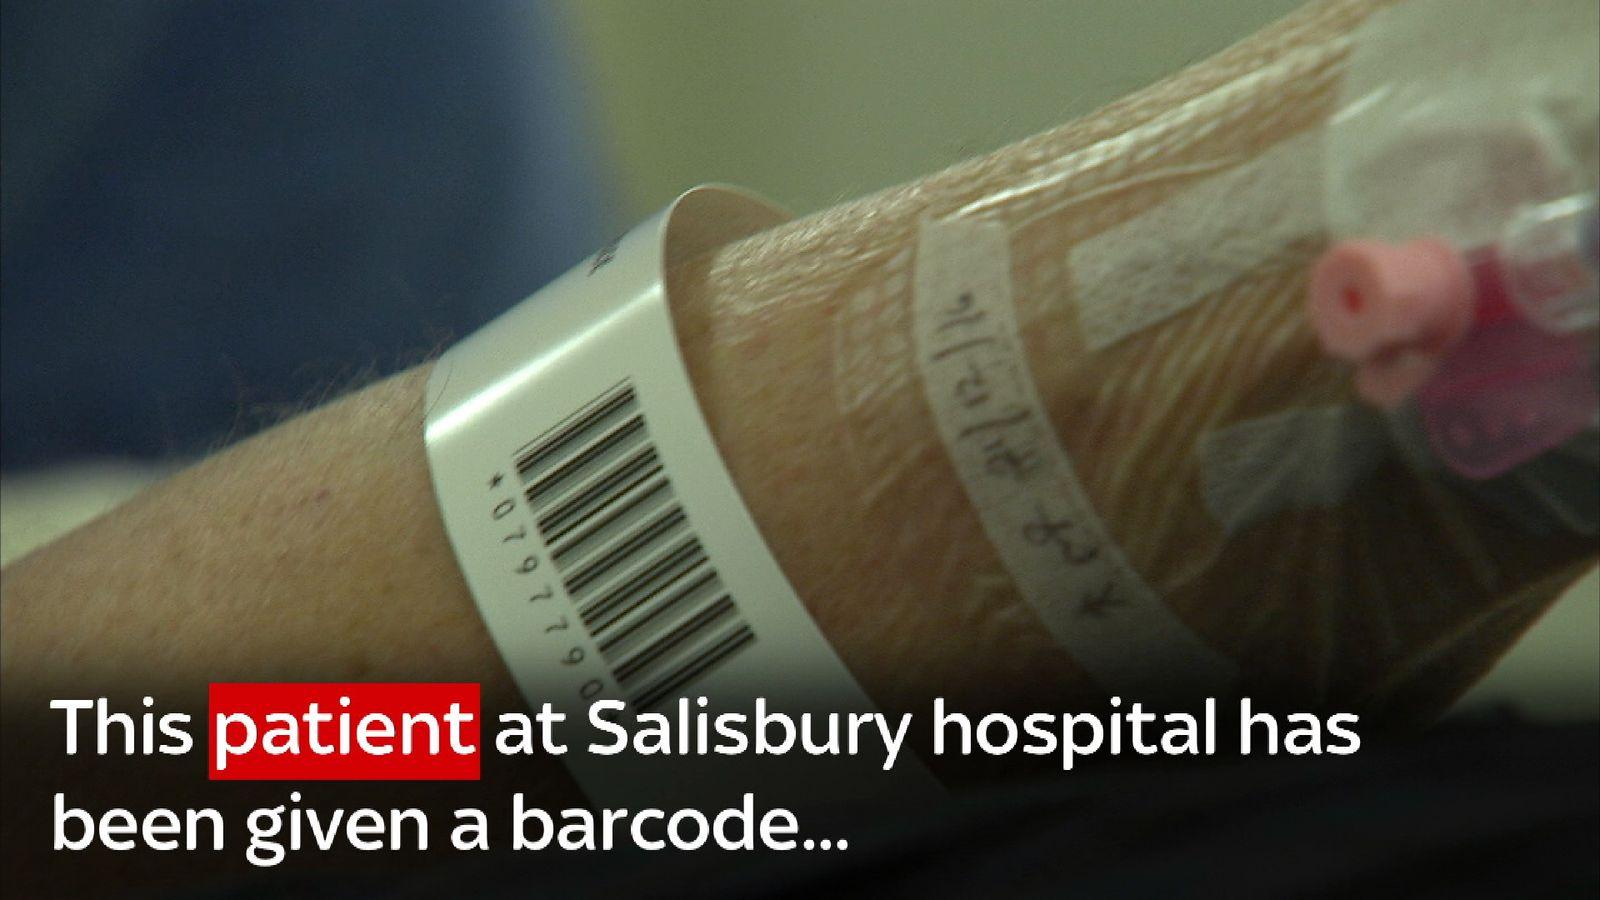 Barcode technology could roll out across NHS England